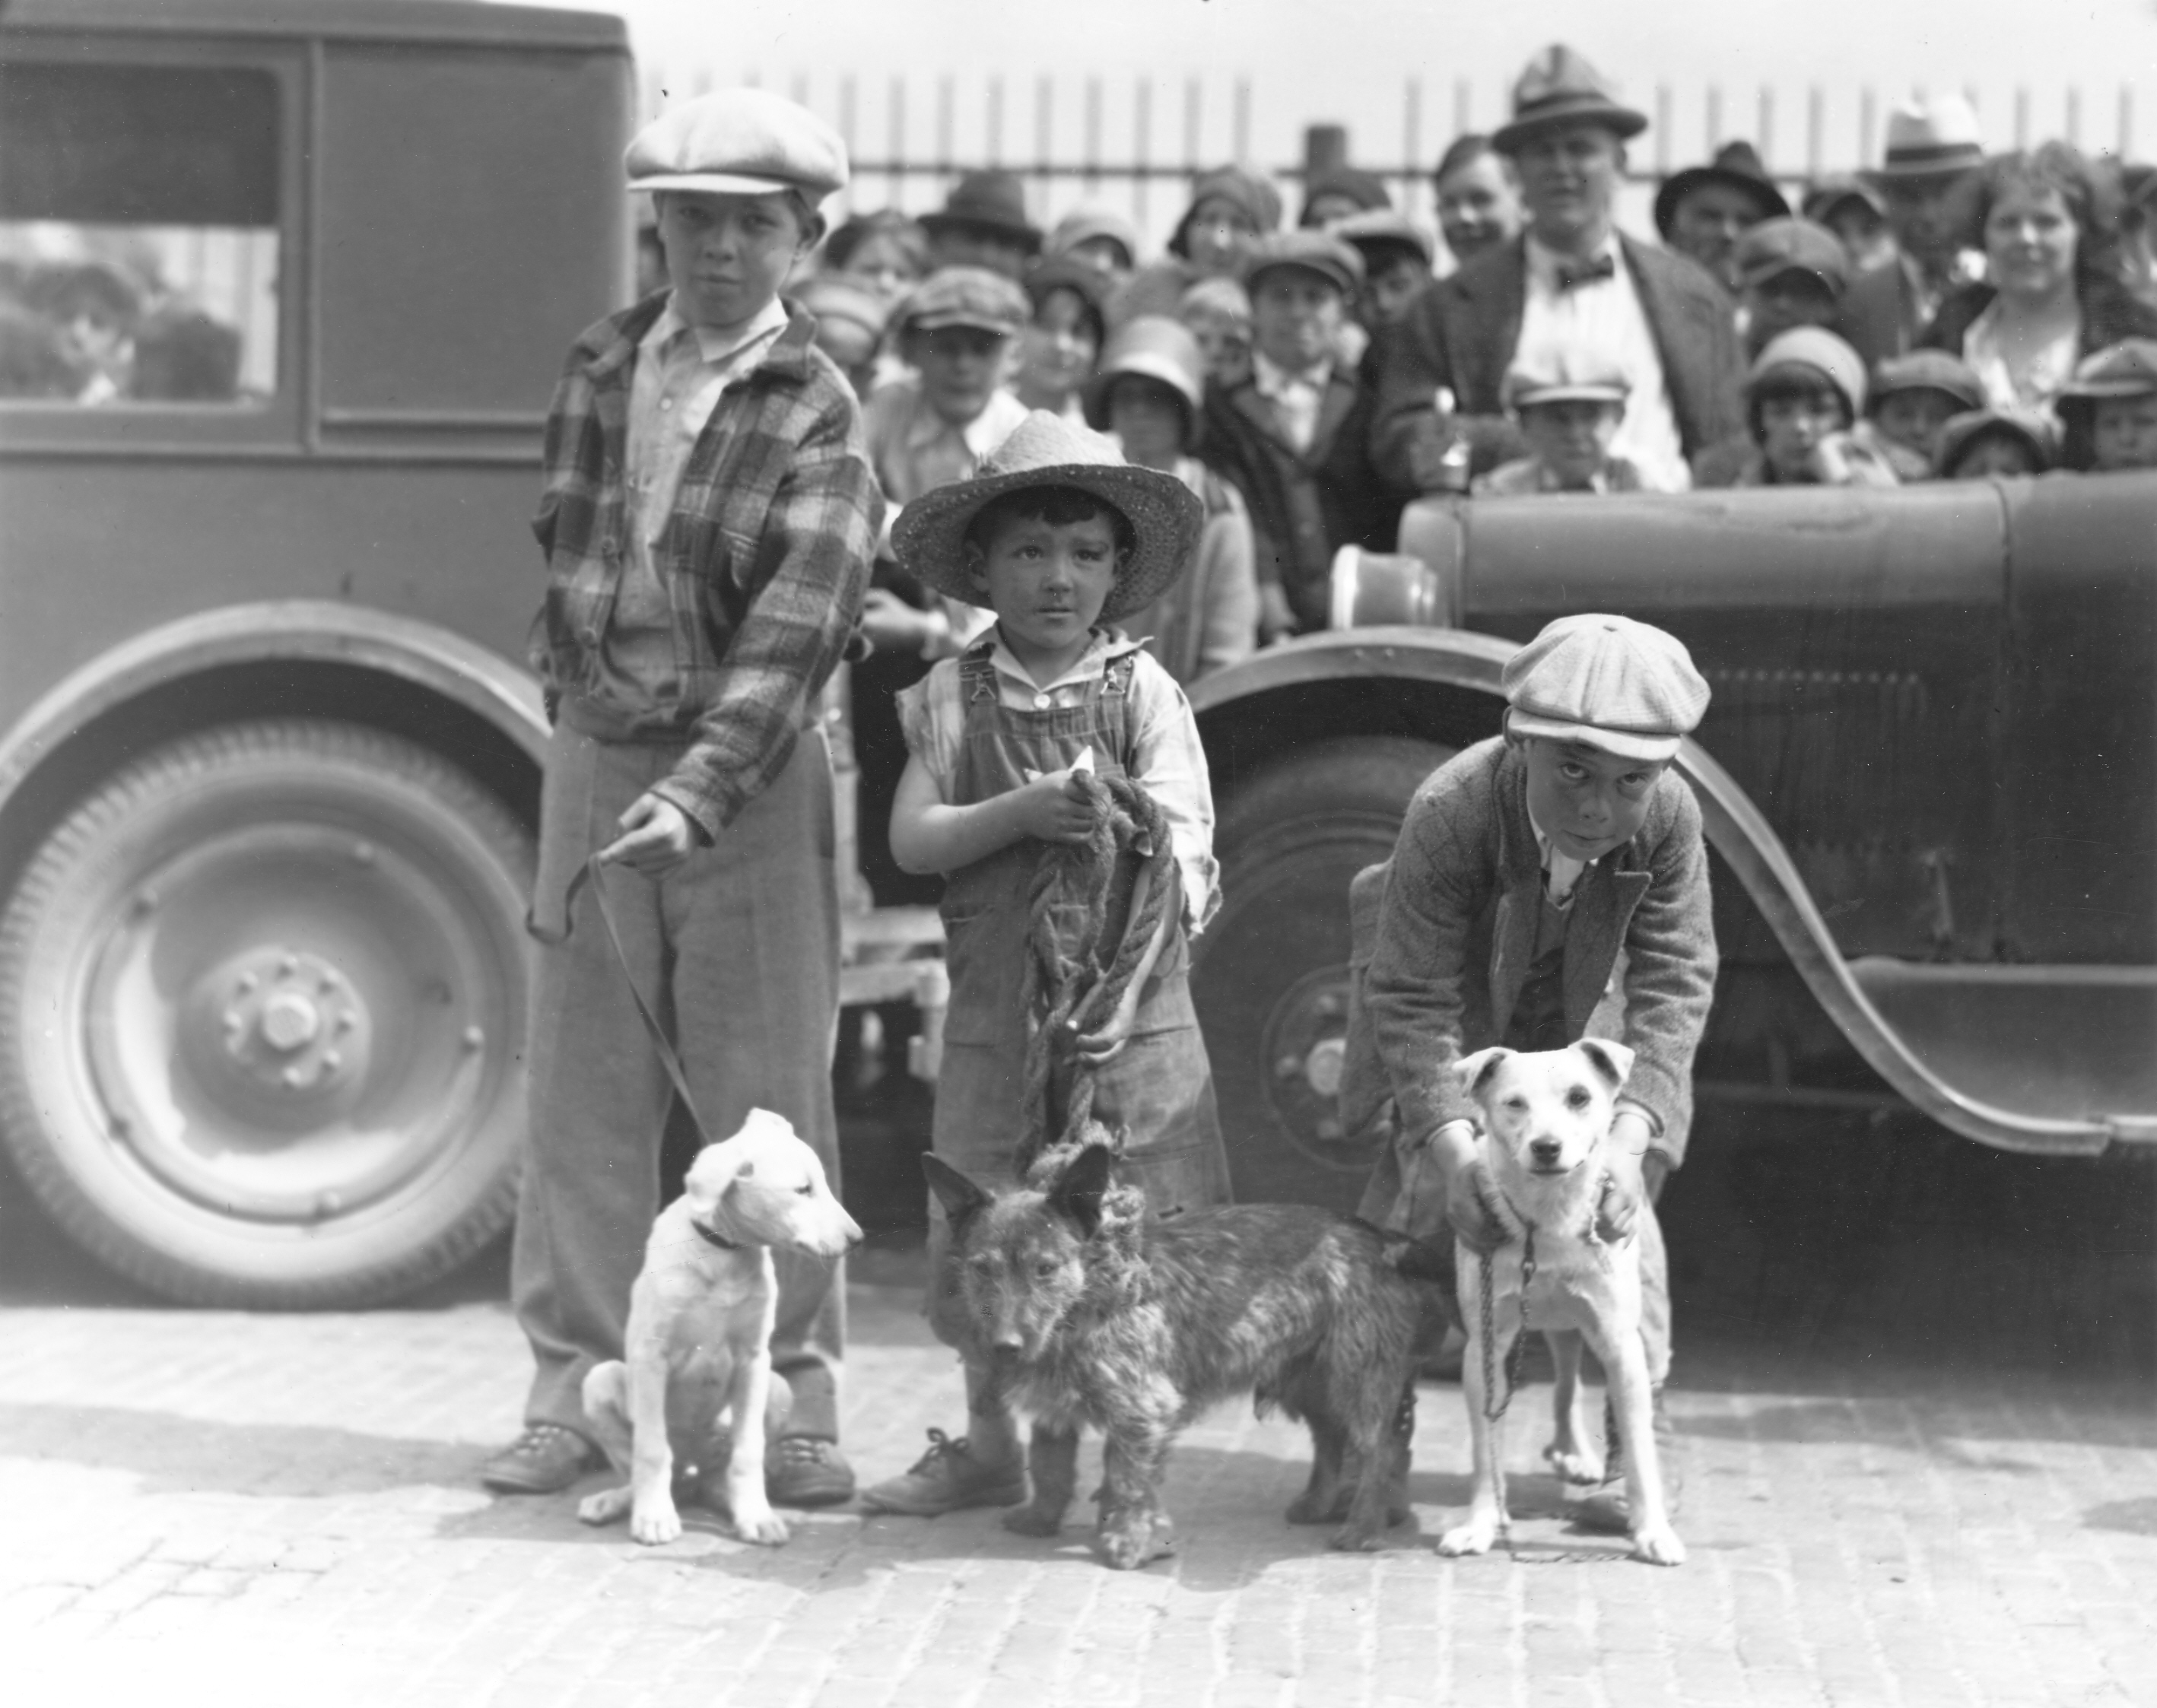 Real Old Fashioned Mutts in 1930